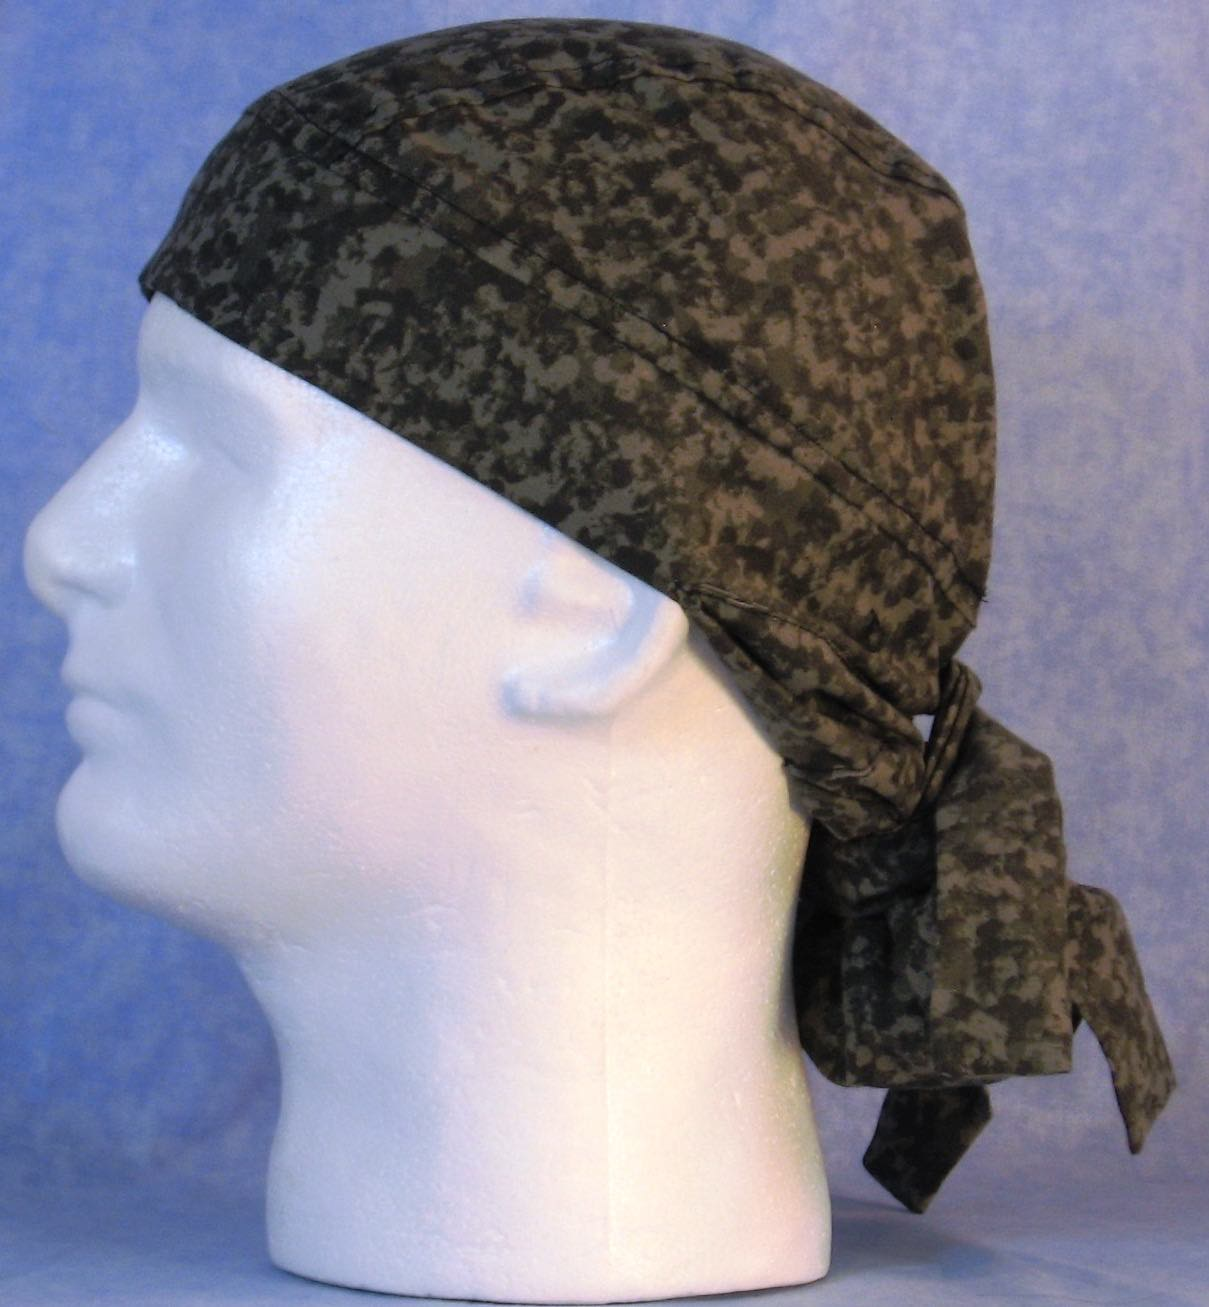 Hair Bag Do Rag in Gray Speckled Camo - Adult 1XL-3XL